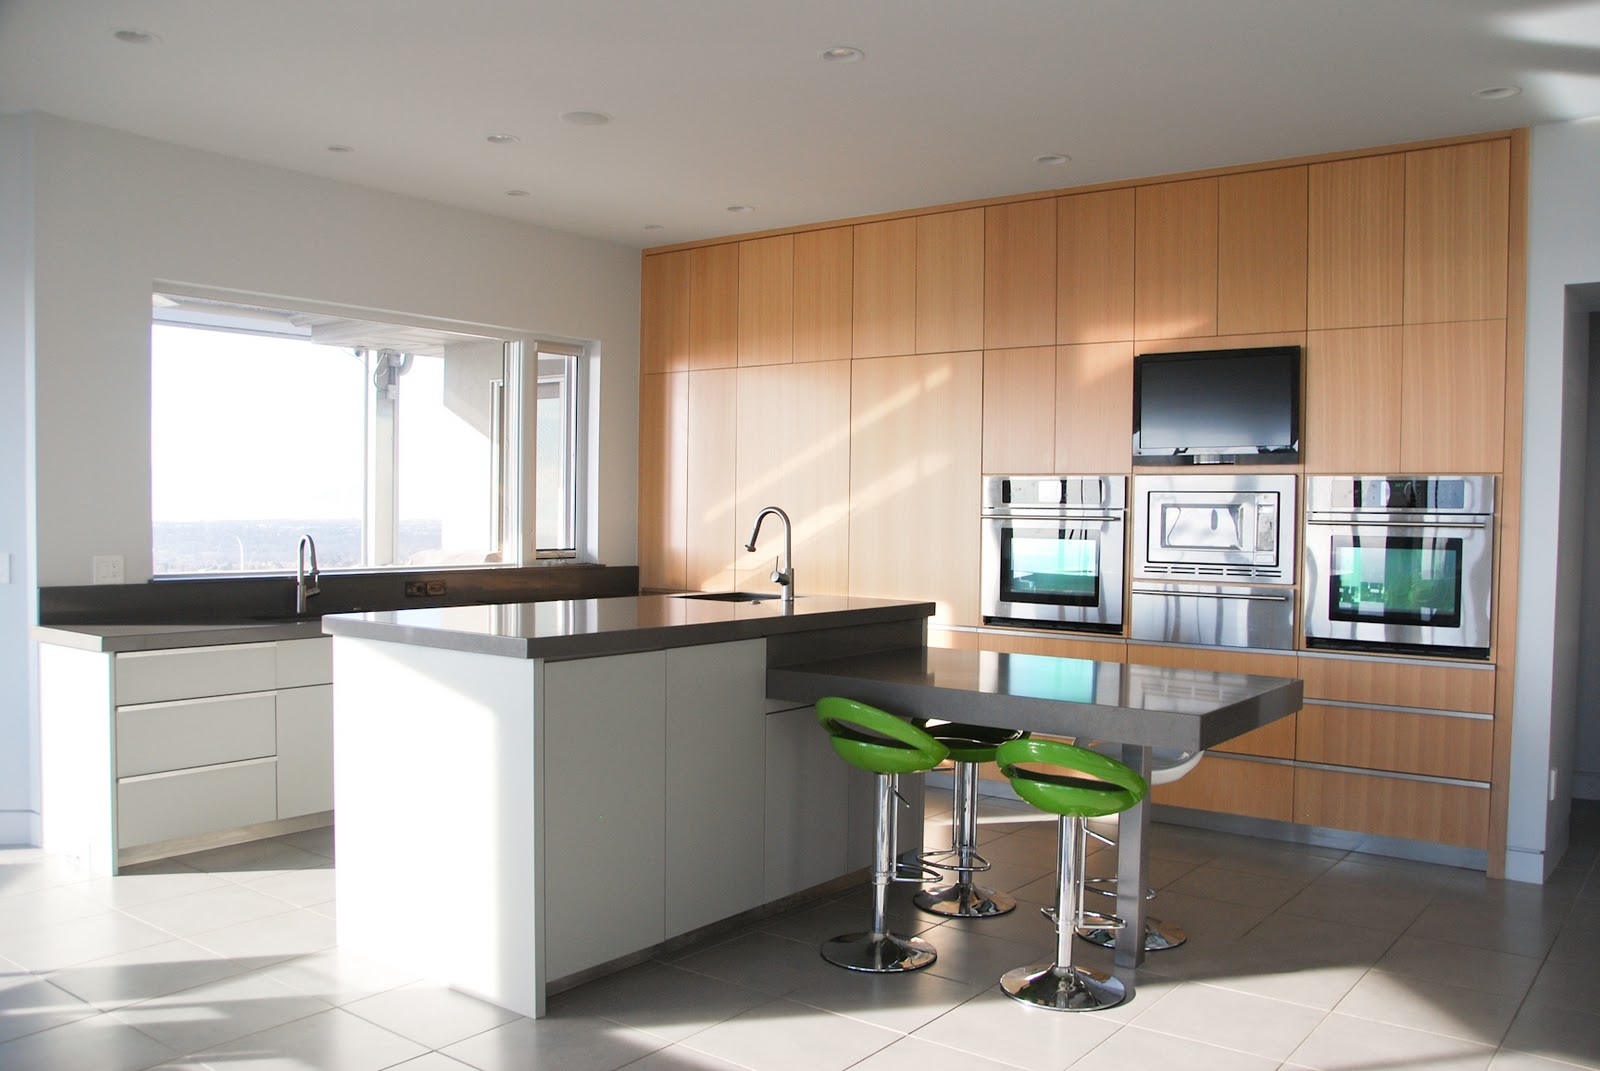 Kitchen Cabinet Colors 2012 The Granite Gurus Our 6 Most Popular Countertop Colors In 2012